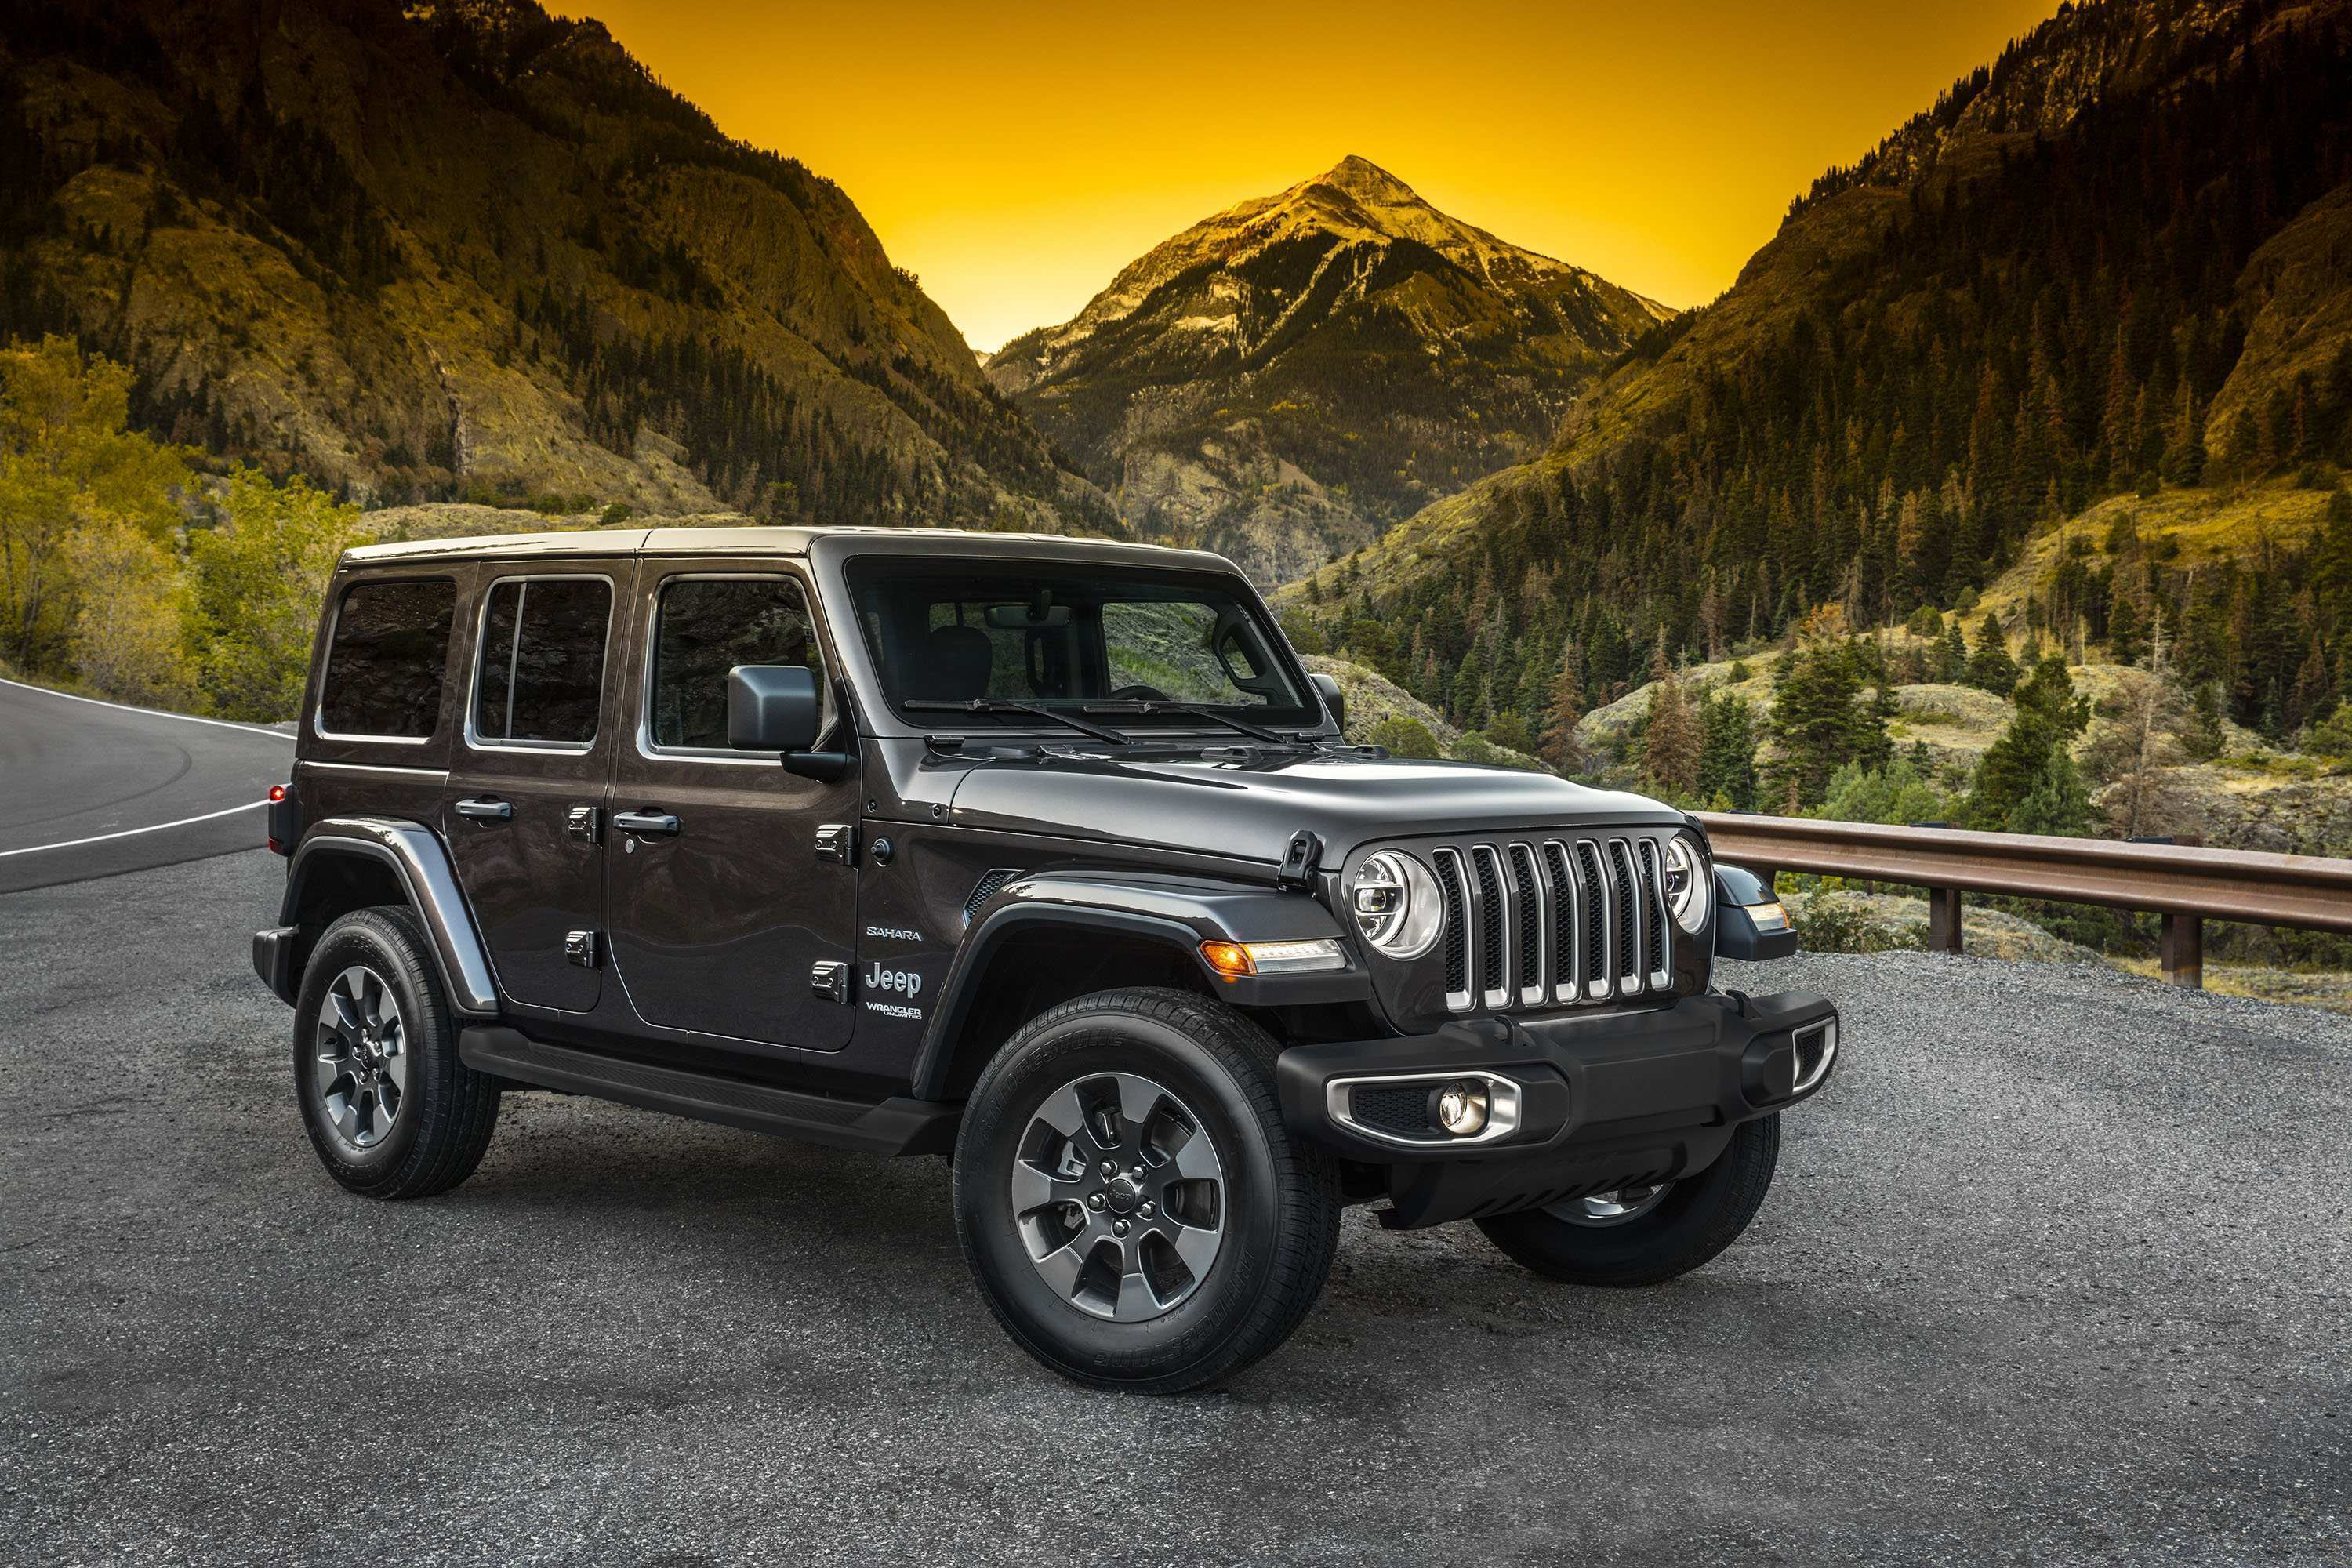 24 All New Jeep Unlimited 2020 Concept